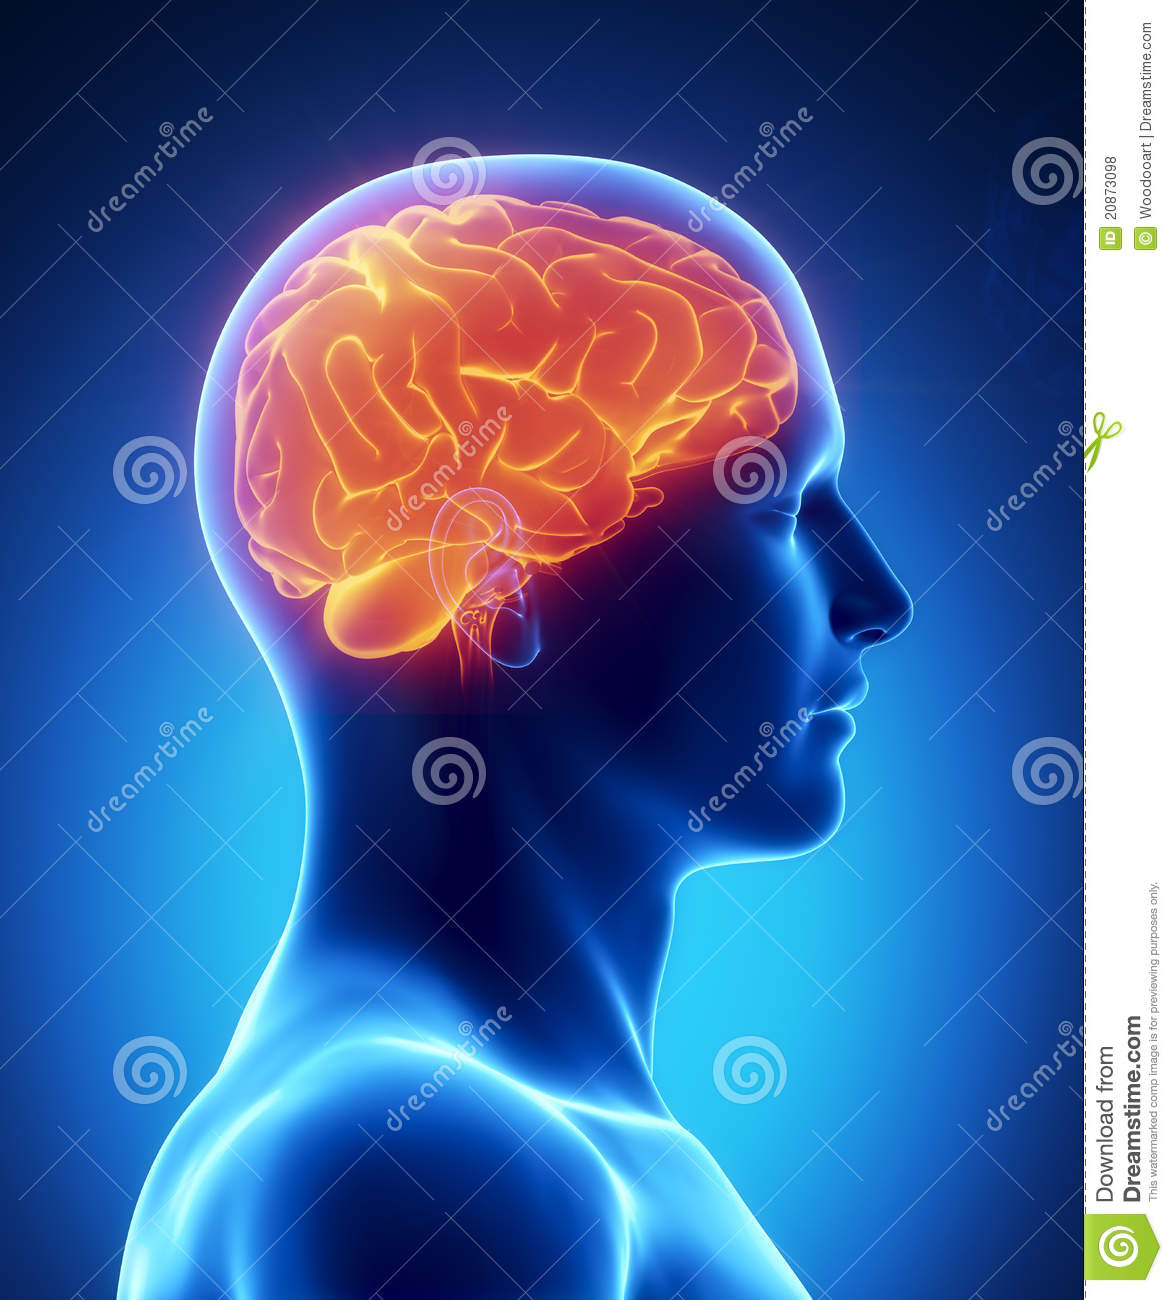 Human brain glowing lateral view